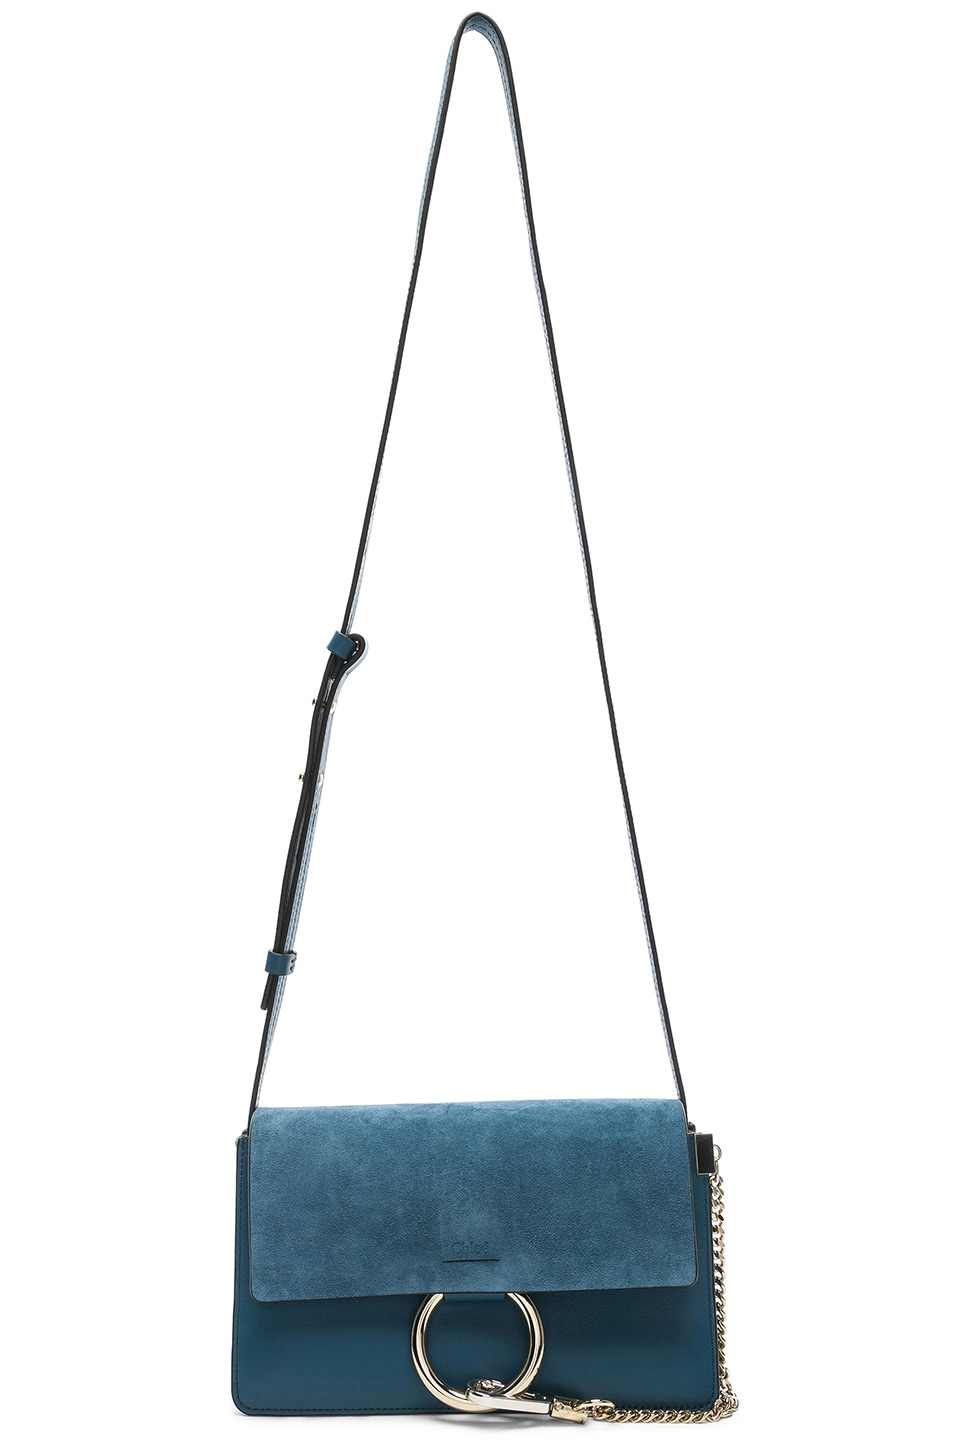 Image 5 of Chloe Small Faye Suede & Calfskin Shoulder Bag in Vinyl Blue